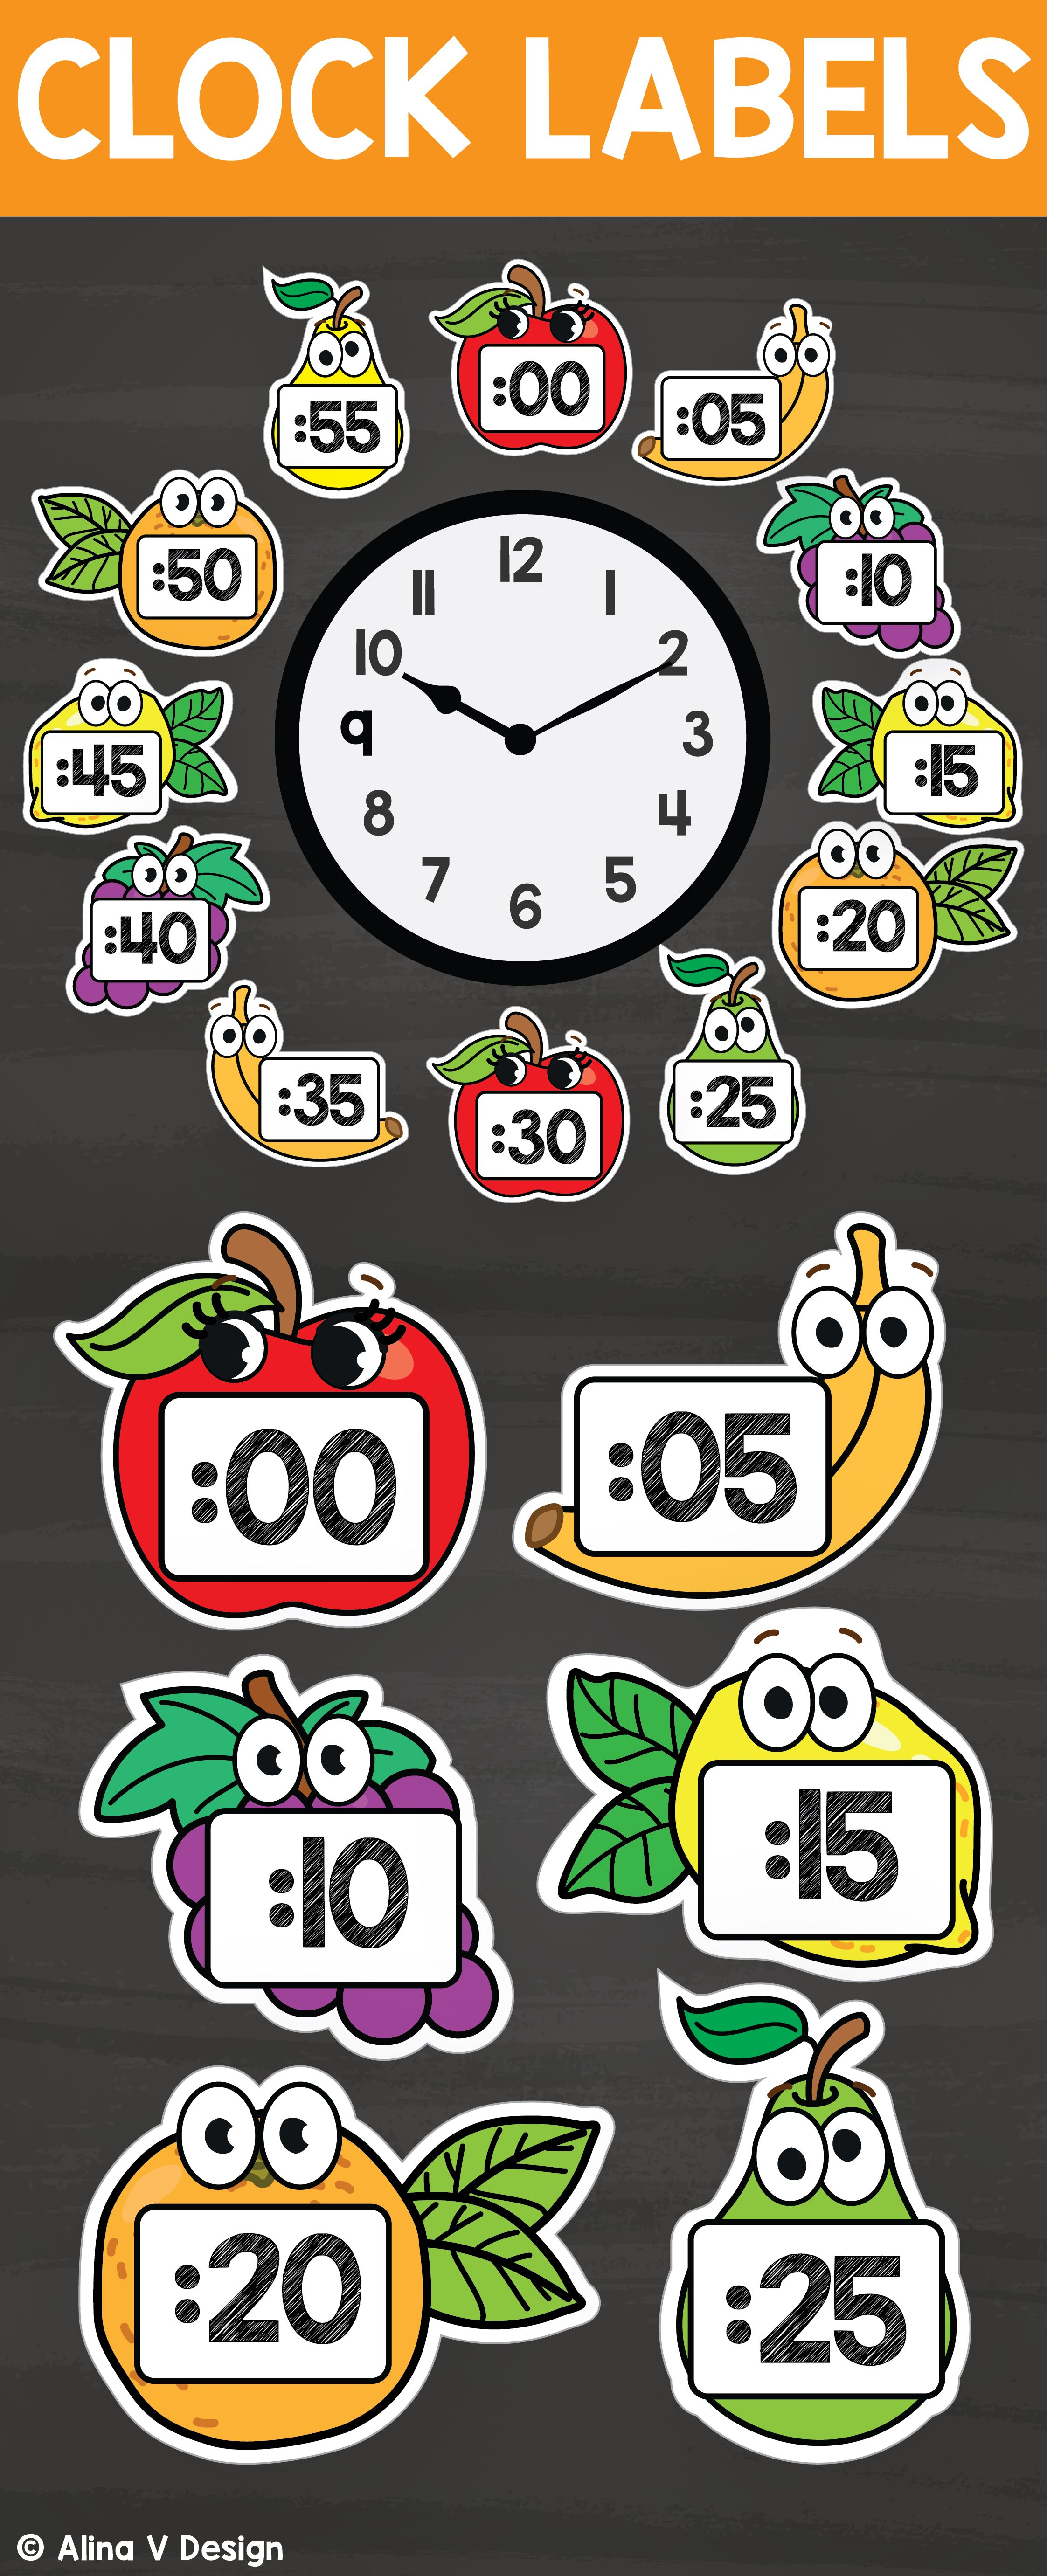 Printable Clock Labels For Your Classroom Decor That Will